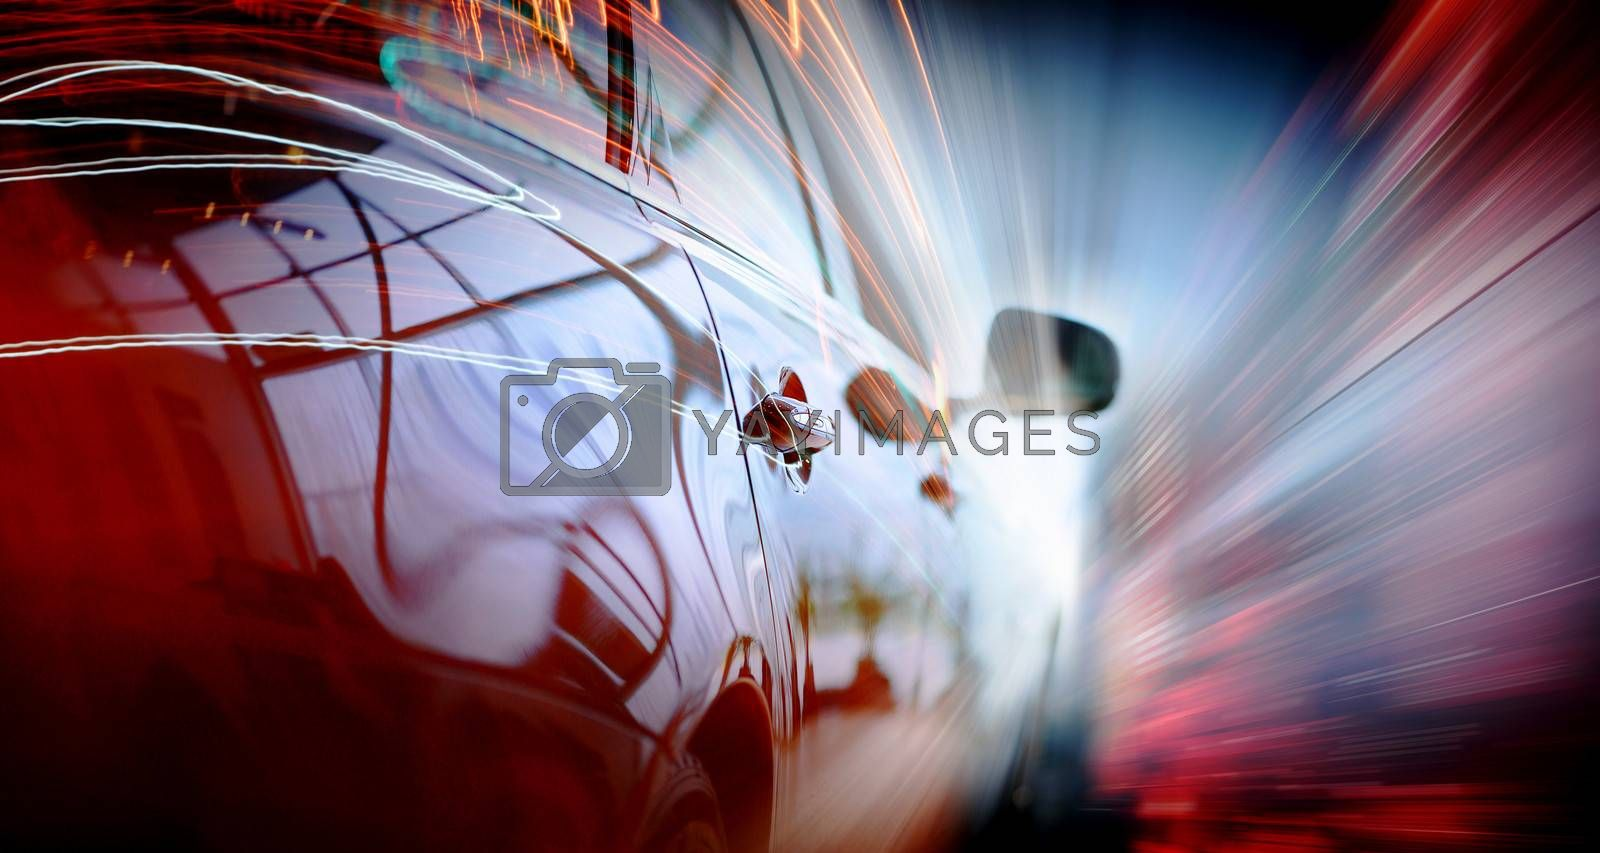 Royalty free image of Rear view of luxury car by sergey_nivens